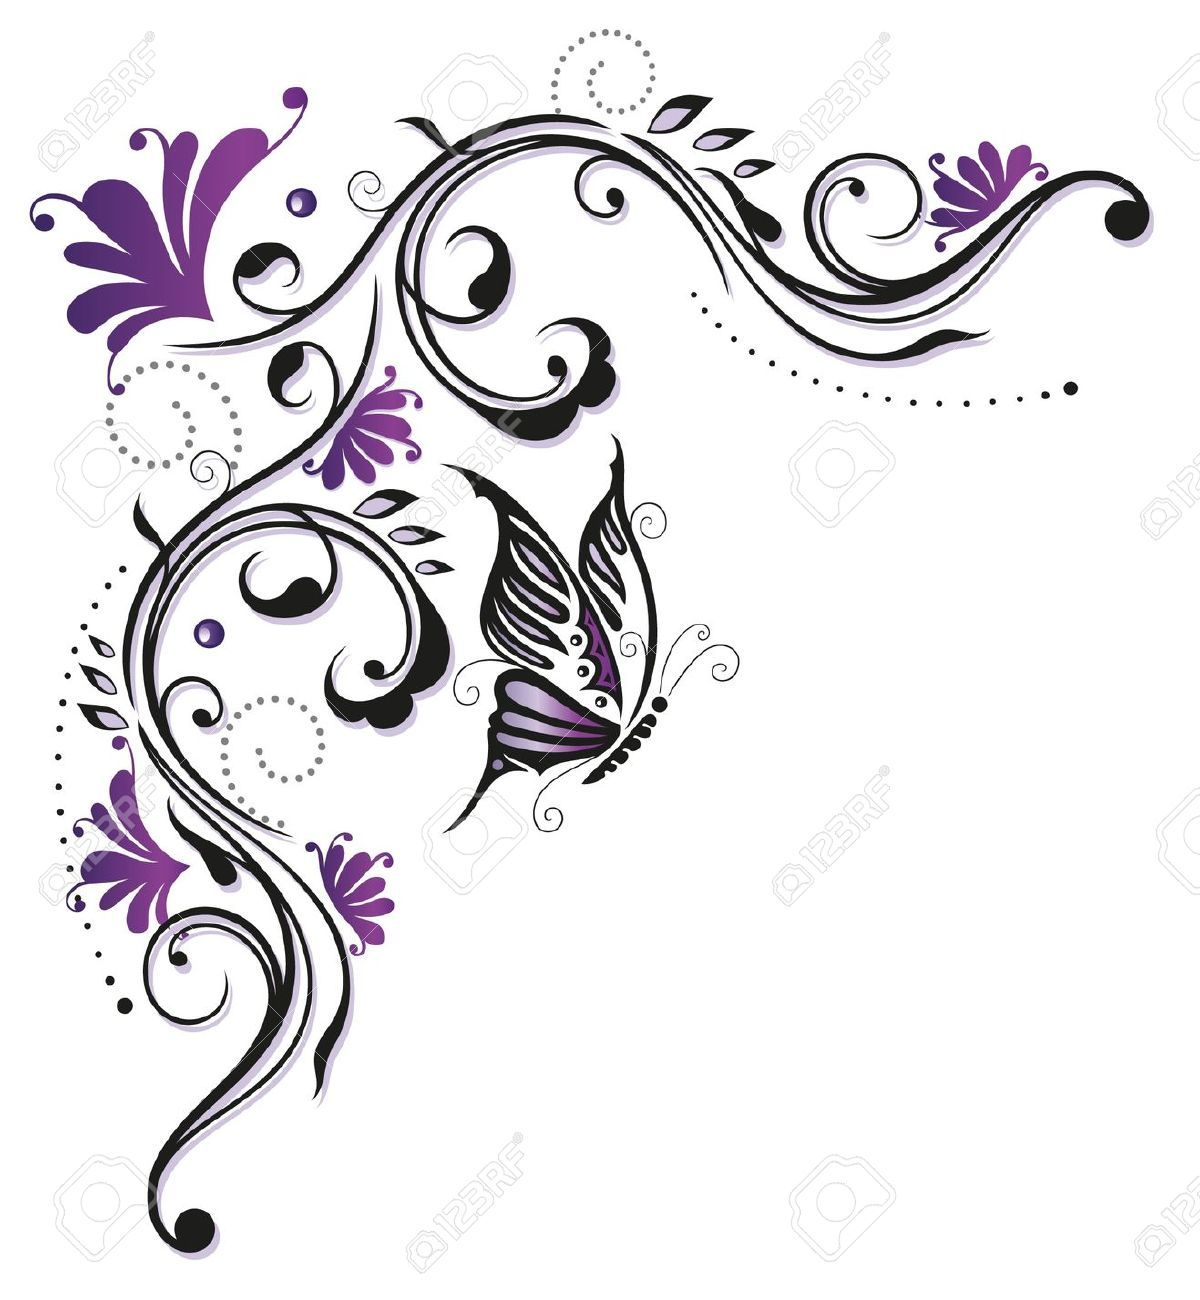 flowers butterfly purple violet royalty free cliparts